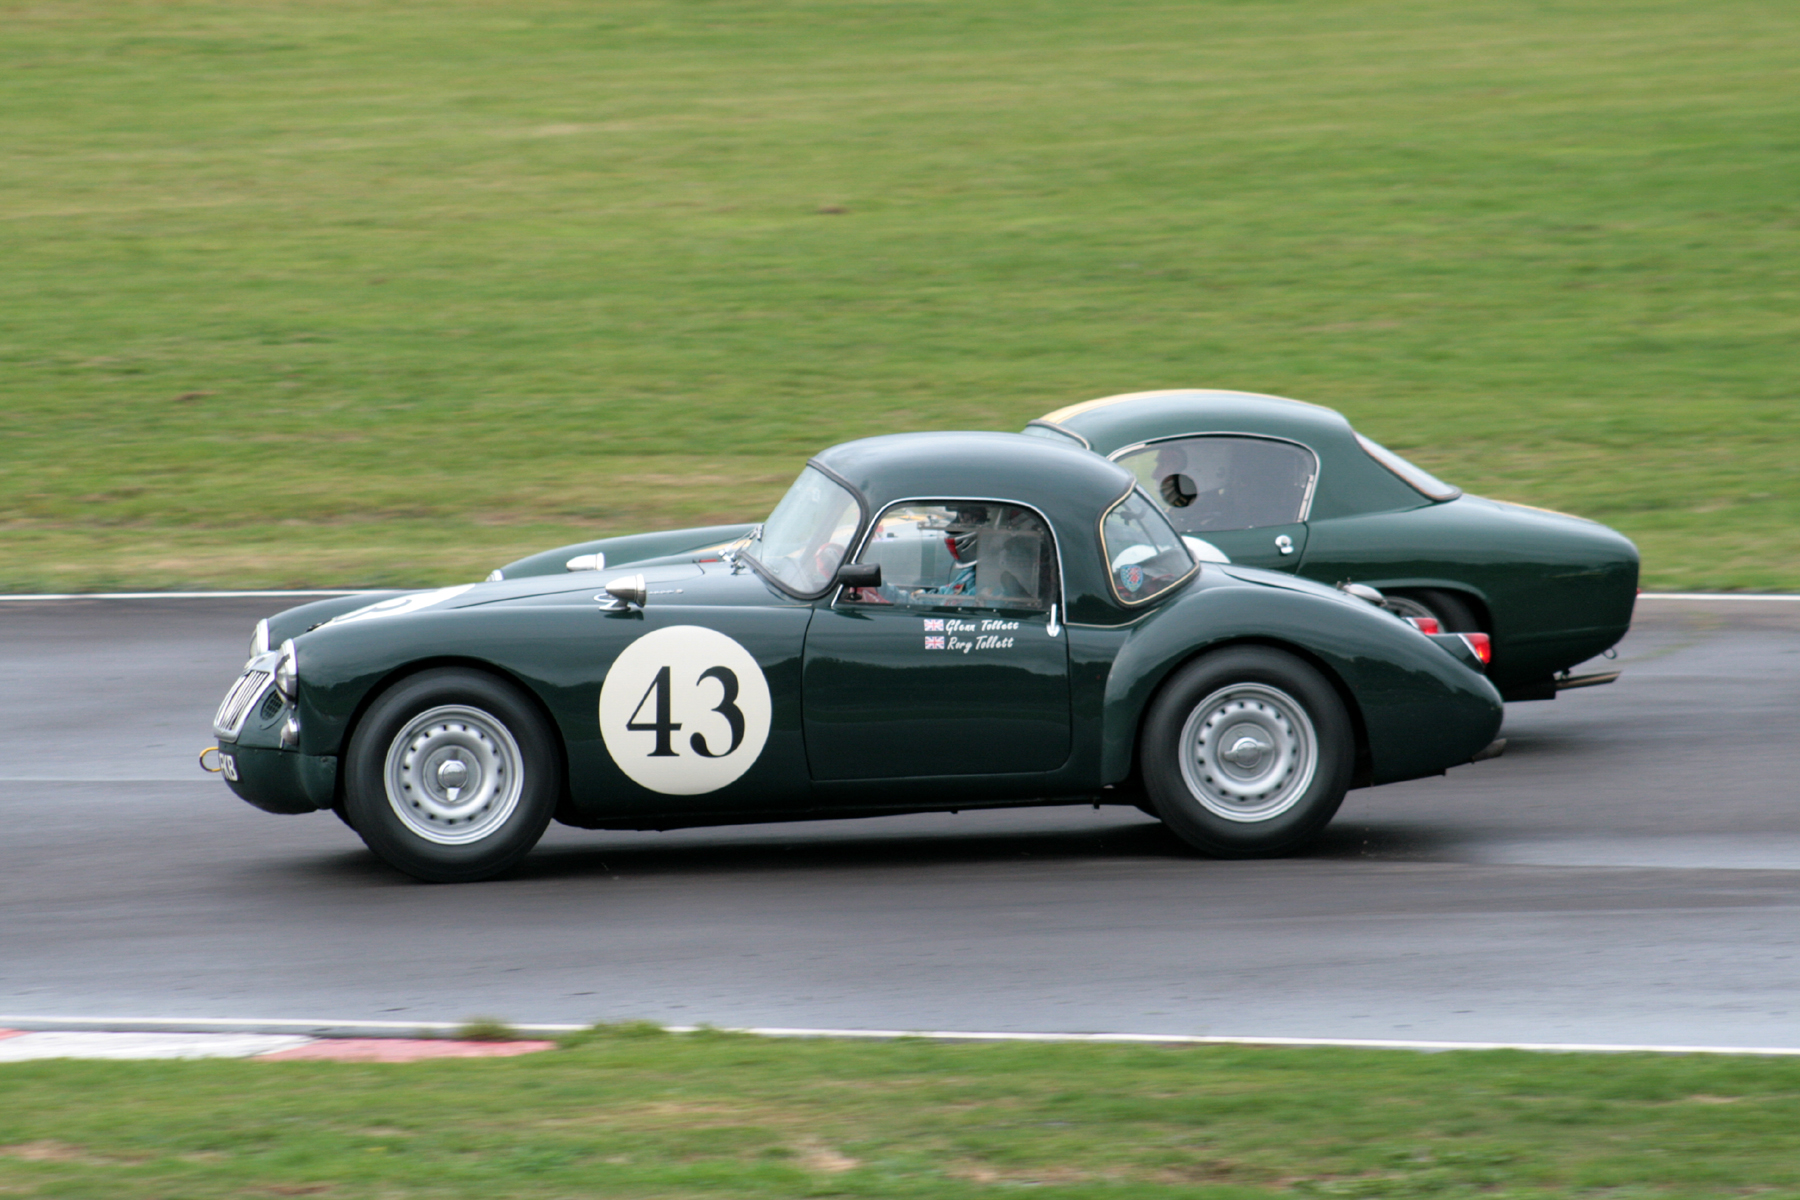 Glenn Tollett (MGA) & Mike Freeman (Lotus Elite) side by side through the Esses for the first time. Glenn had dropped back, whilst Mike had made some places, not entirely unexpectedly.  John Turner